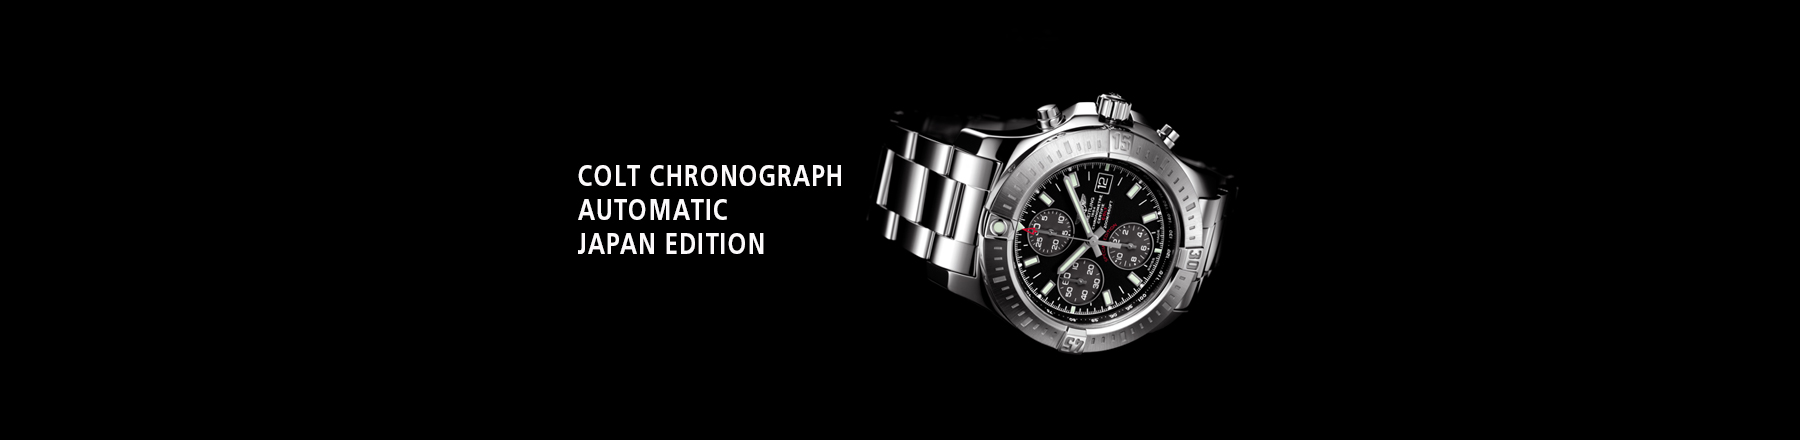 COLT CHRONOGRAPH AUTOMATIC JAPAN EDITION